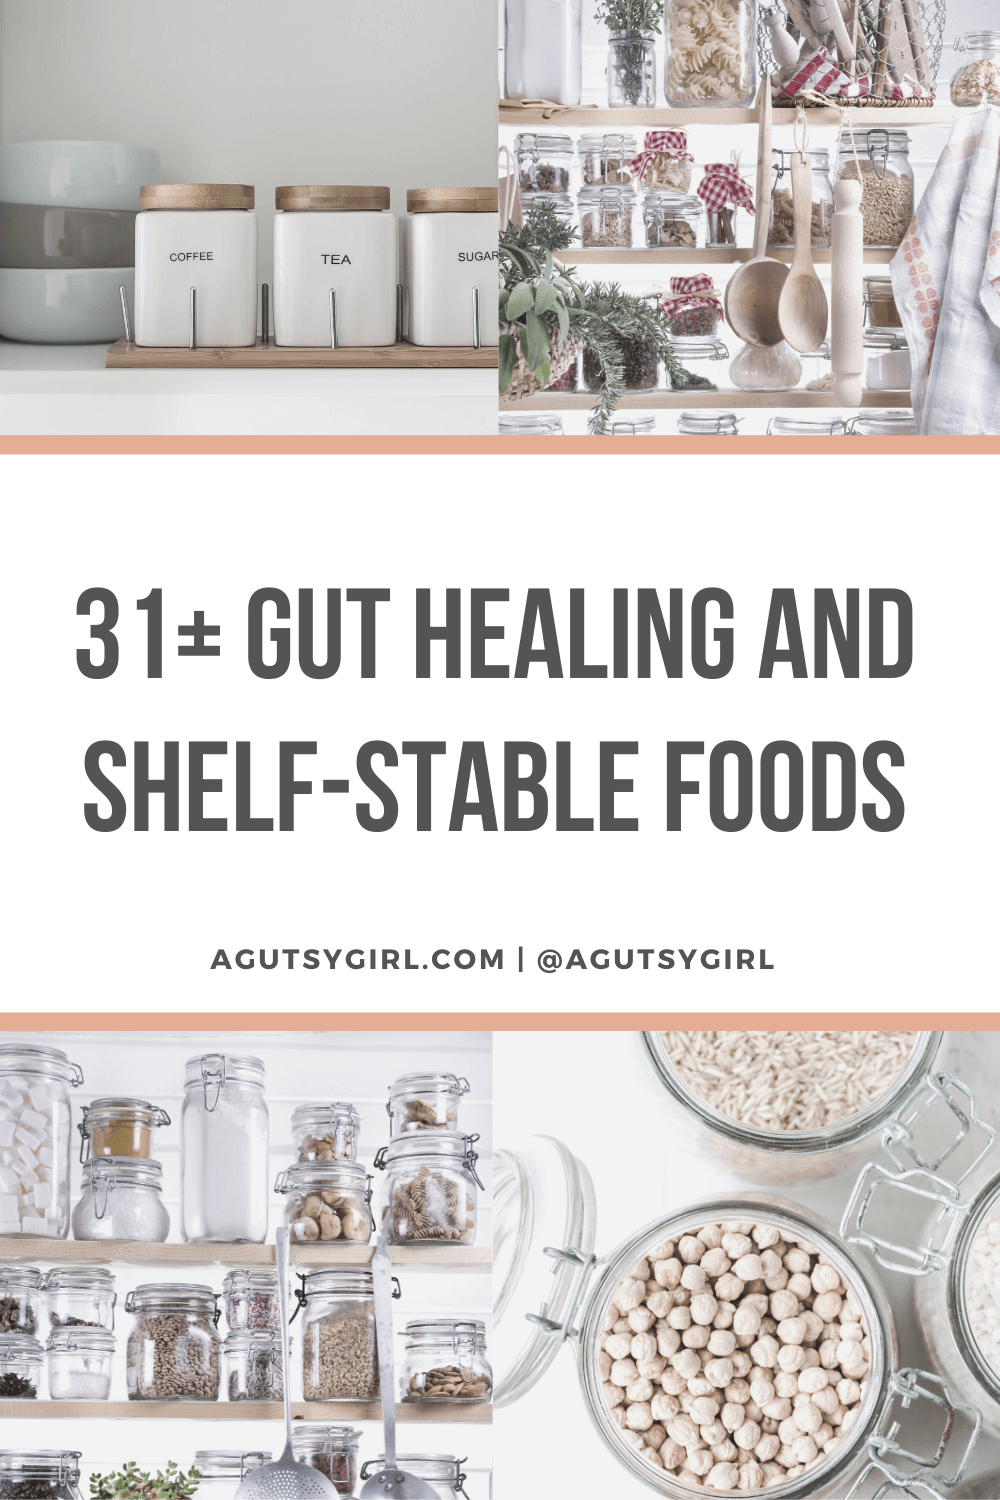 31 Gut Healing and Shelf-Stable Foods agutsygirl.com #guthealth #shelfstable #cooking